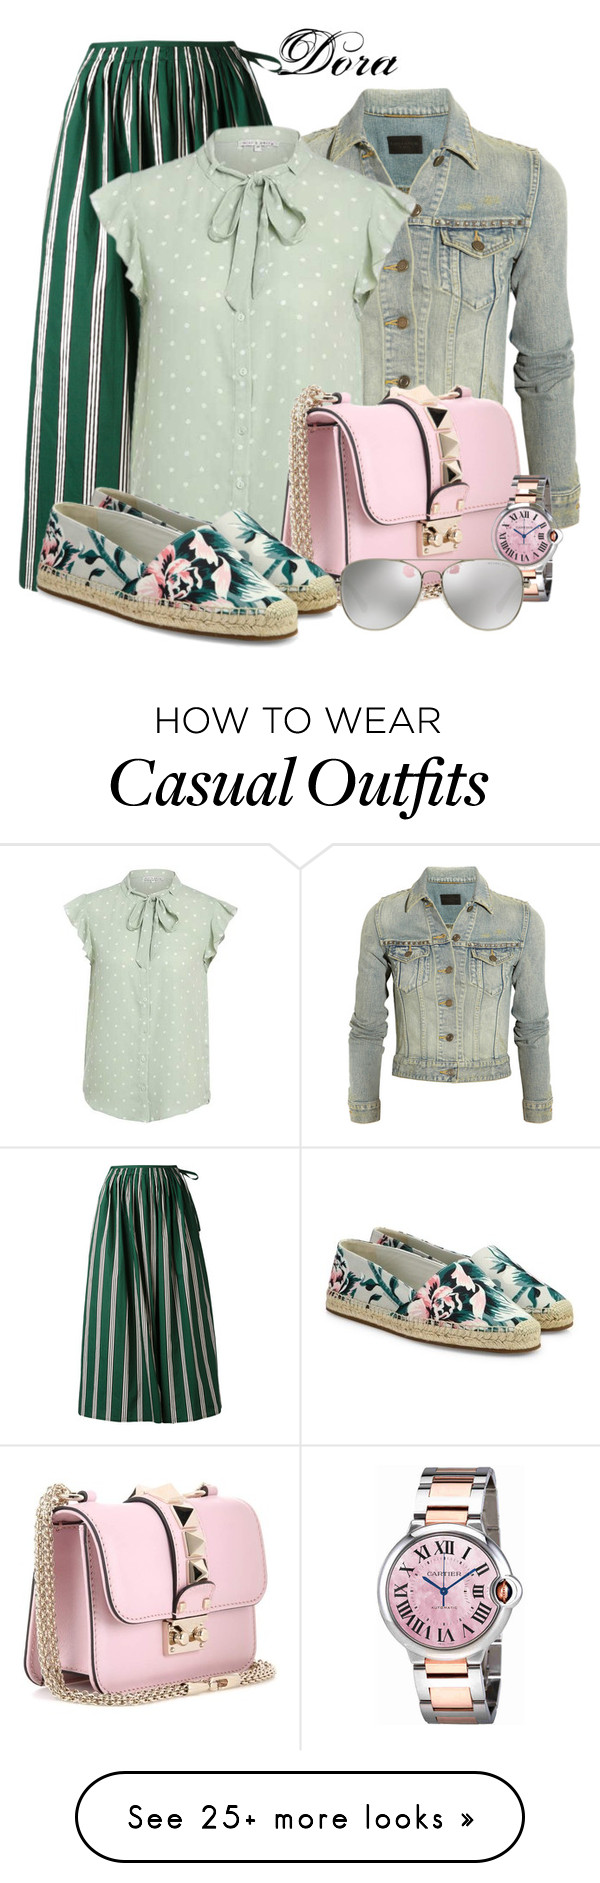 6417 webster -  Senza Titolo 6417 By Doradabrowska On Polyvore Featuring Aspesi Yves Saint Laurent